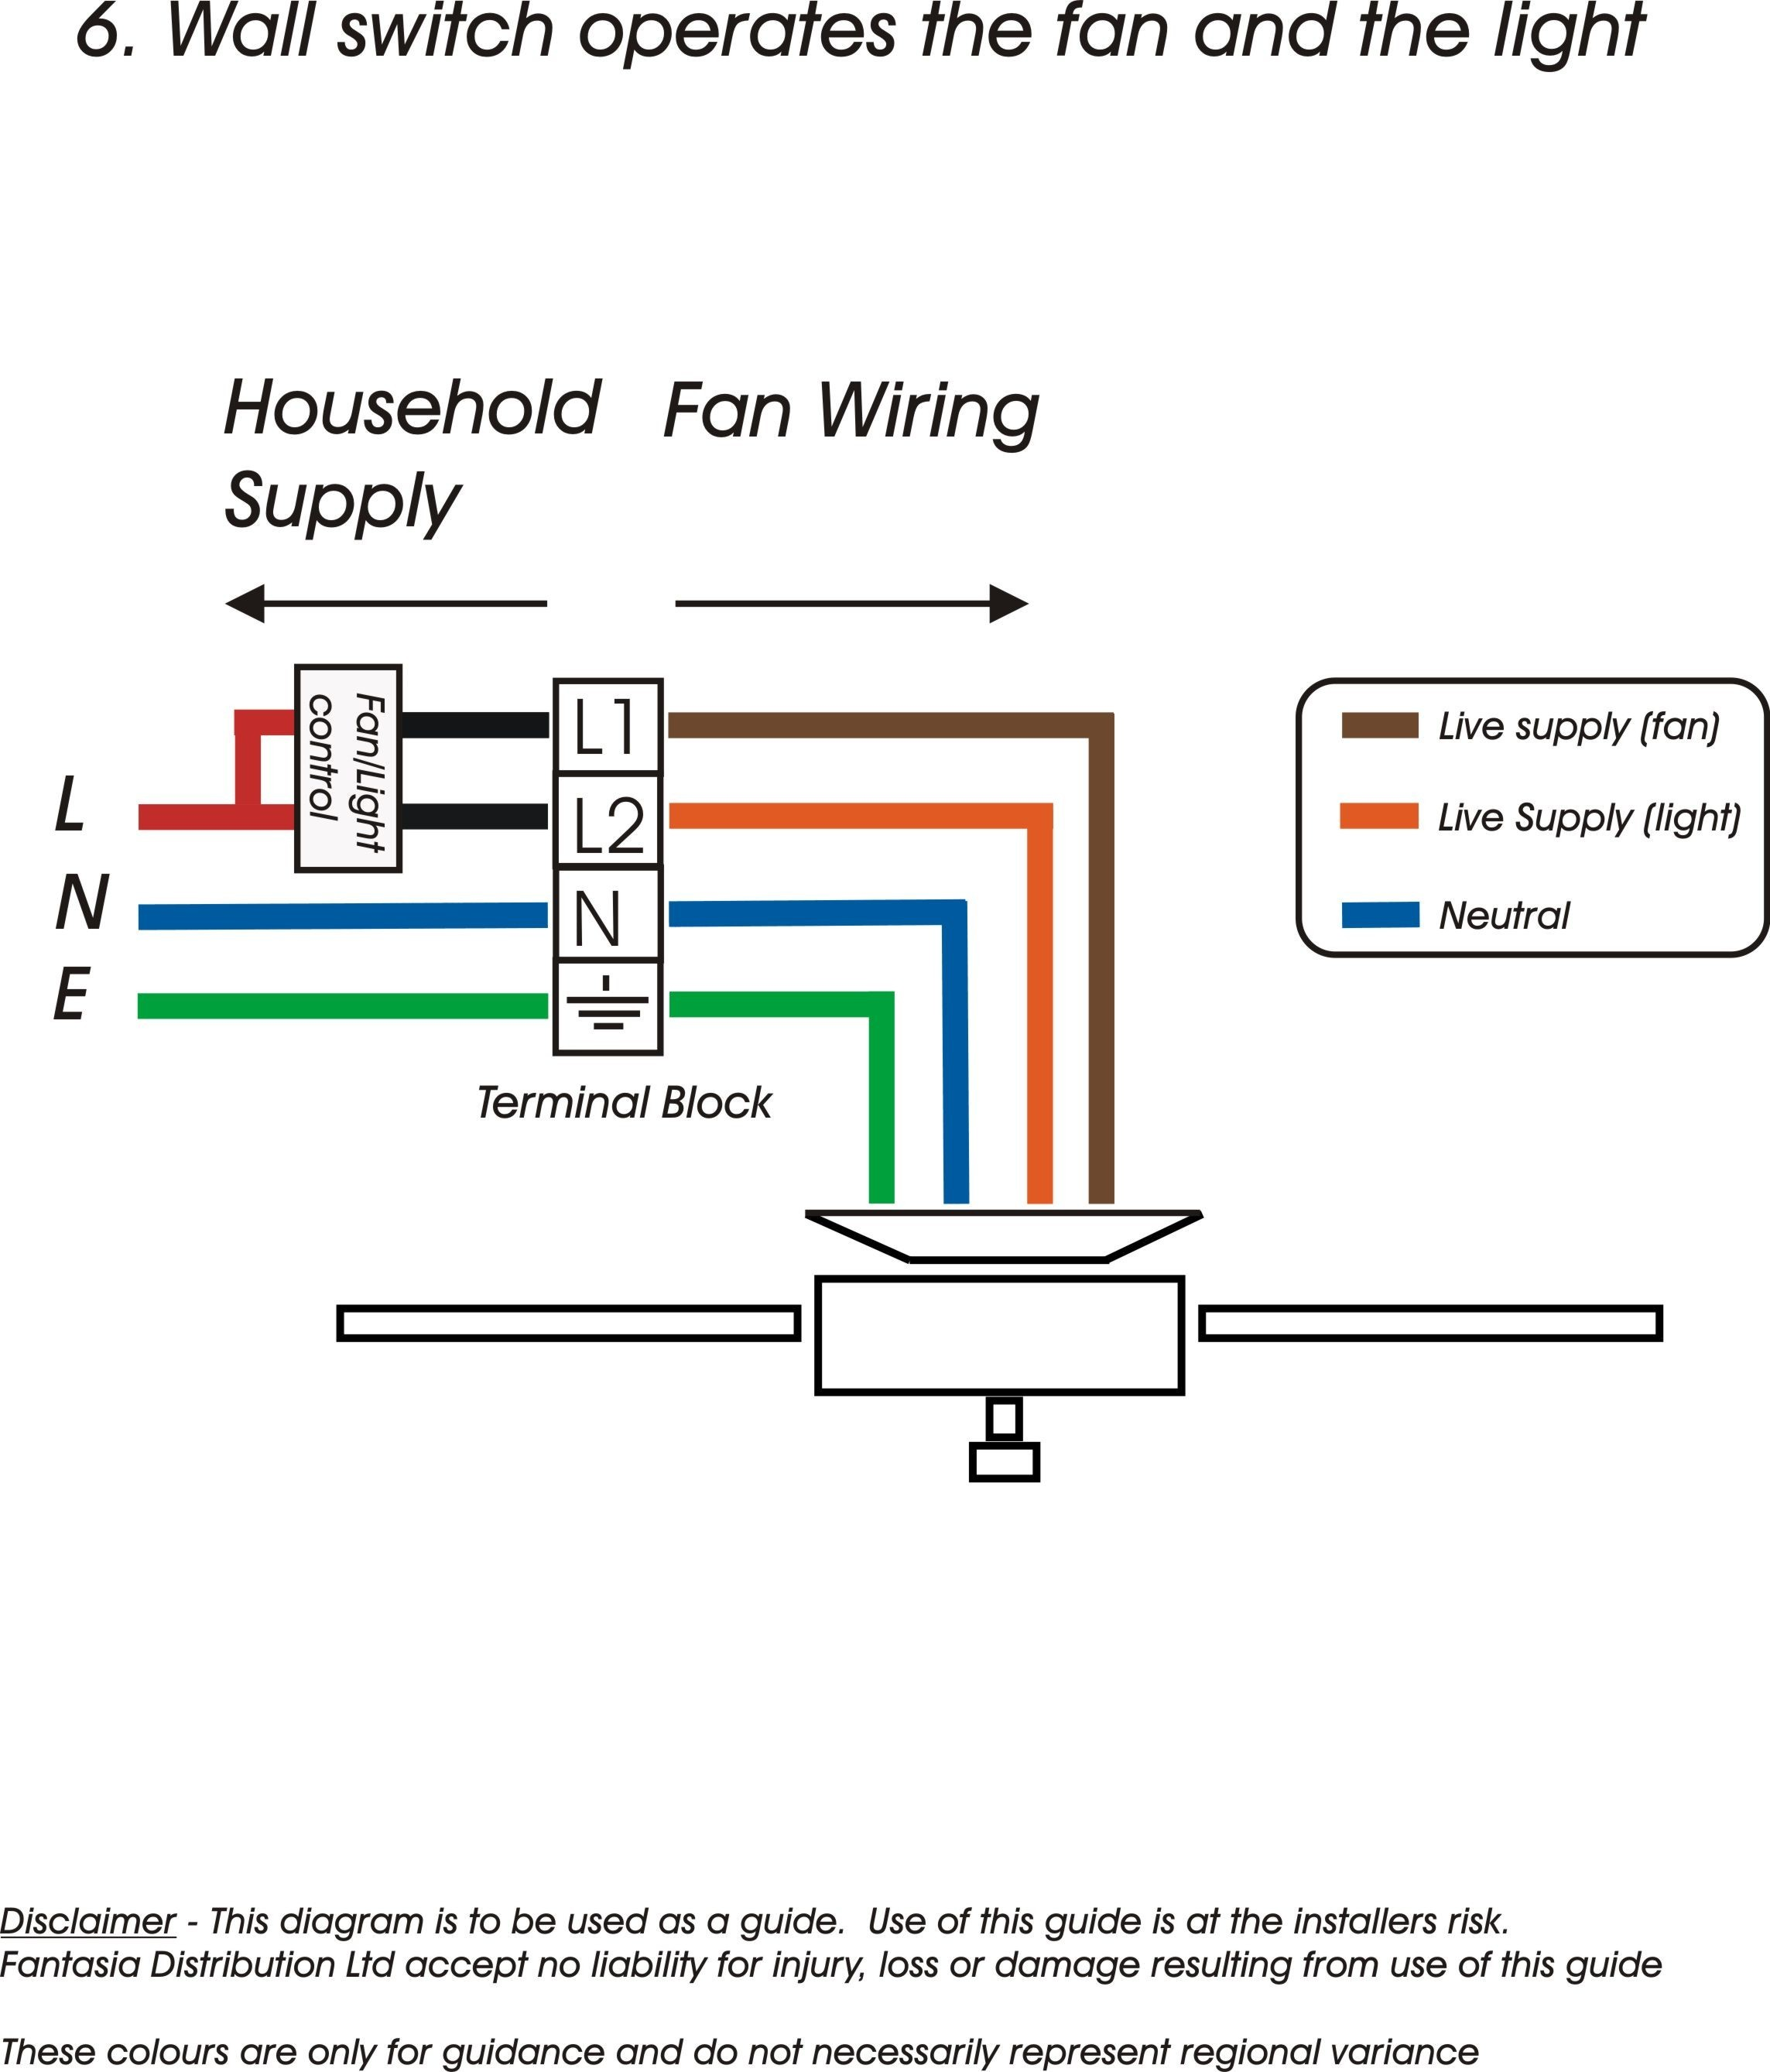 How to Wire A Light with Two Switches Switch Diagram Ceiling Fan Wiring Diagram Australia Fresh without Light E280a2 Of How to Wire A Light with Two Switches Switch Diagram Ceiling Fan Wall Switch Wiring Diagram to Light and Home with for